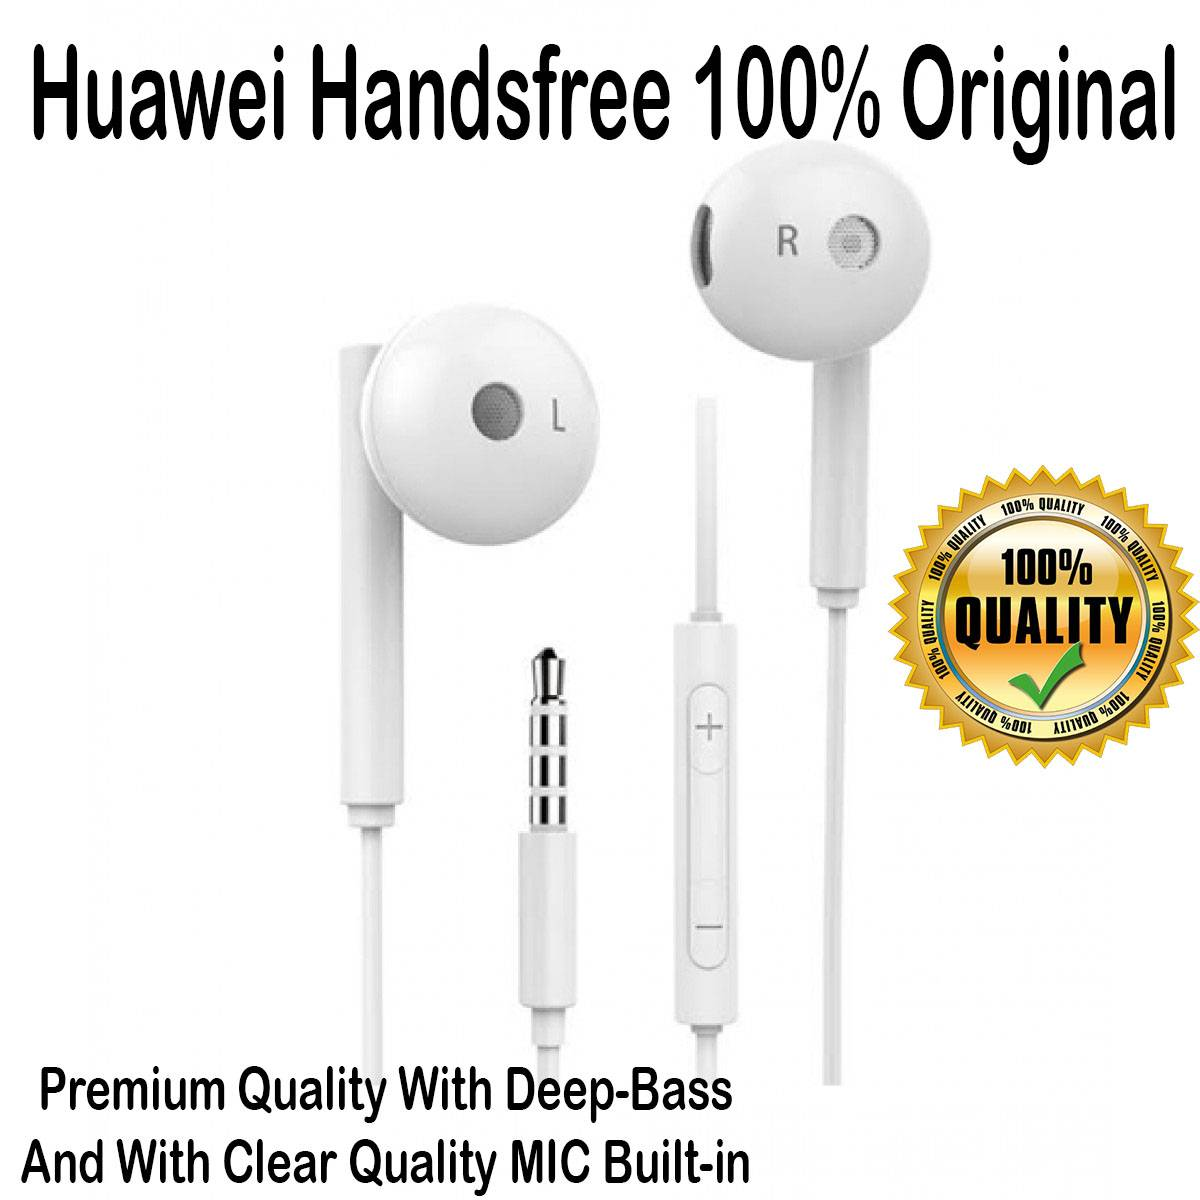 100% Original Handsfree 3.5mm Jack With Deep-Bass and Clear MIC Quality Suitable for Huawei Mobile Phones And All Other Smart Phones